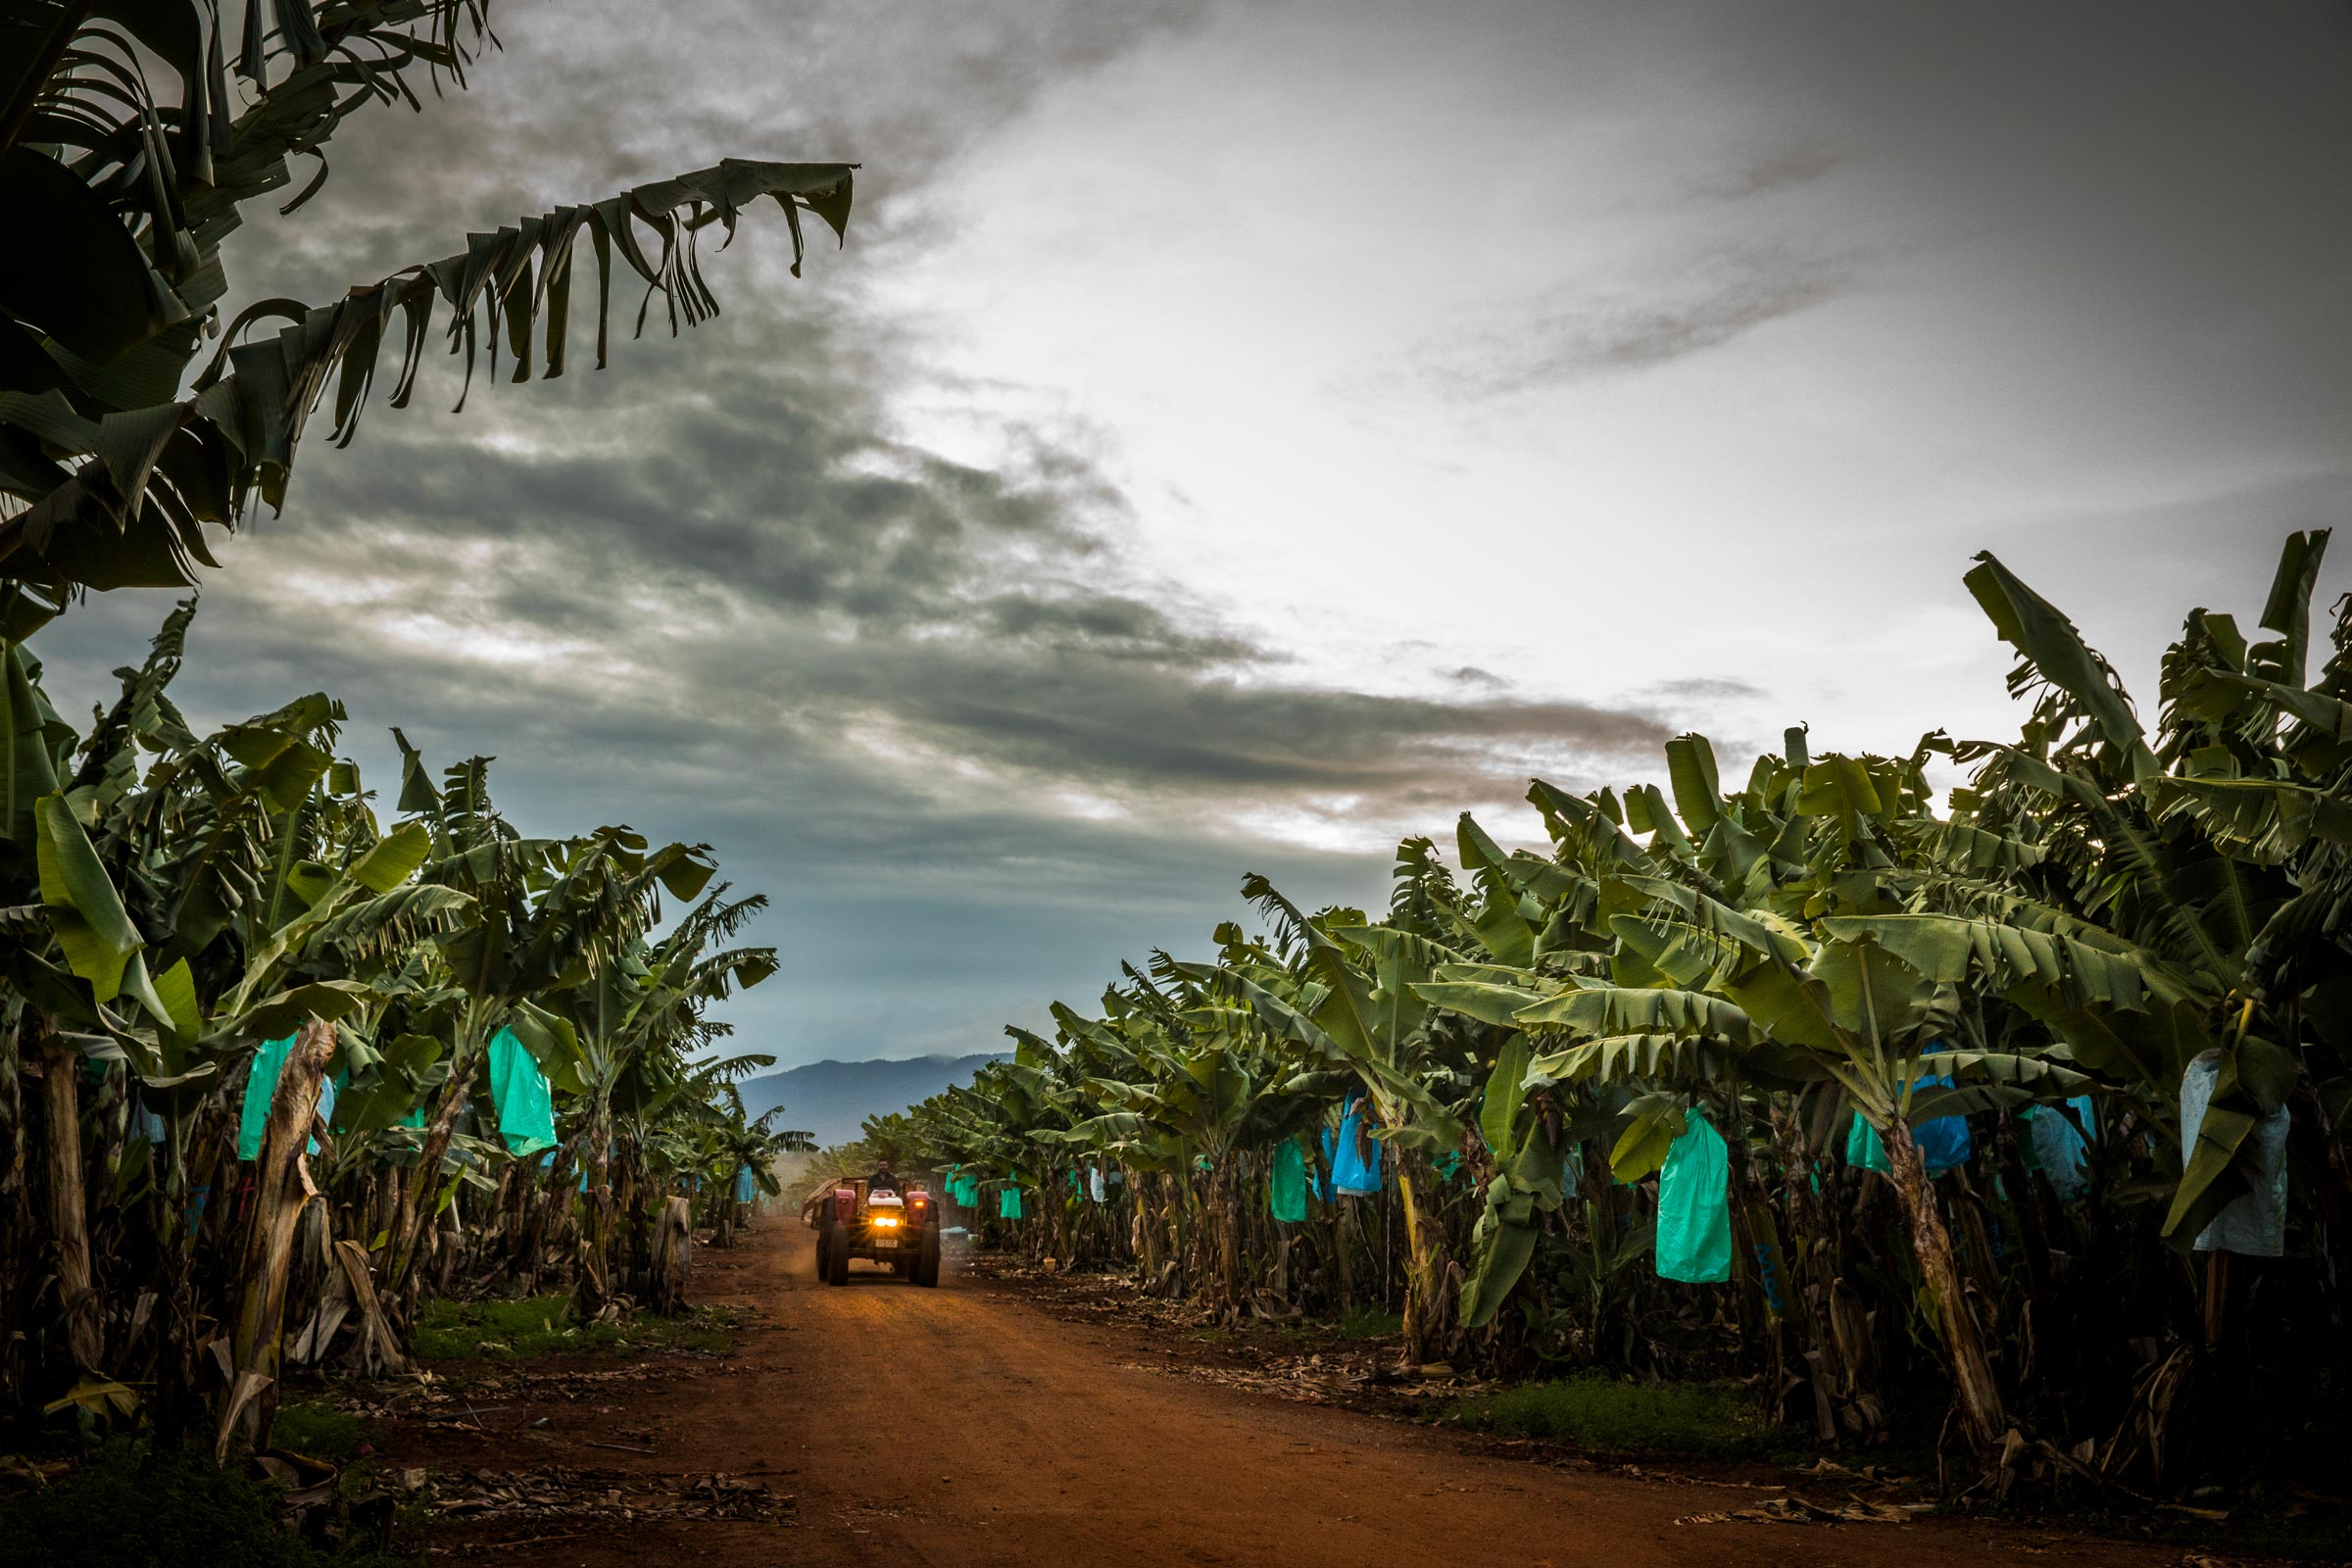 tractor driving down road in banana plantation with storm clouds